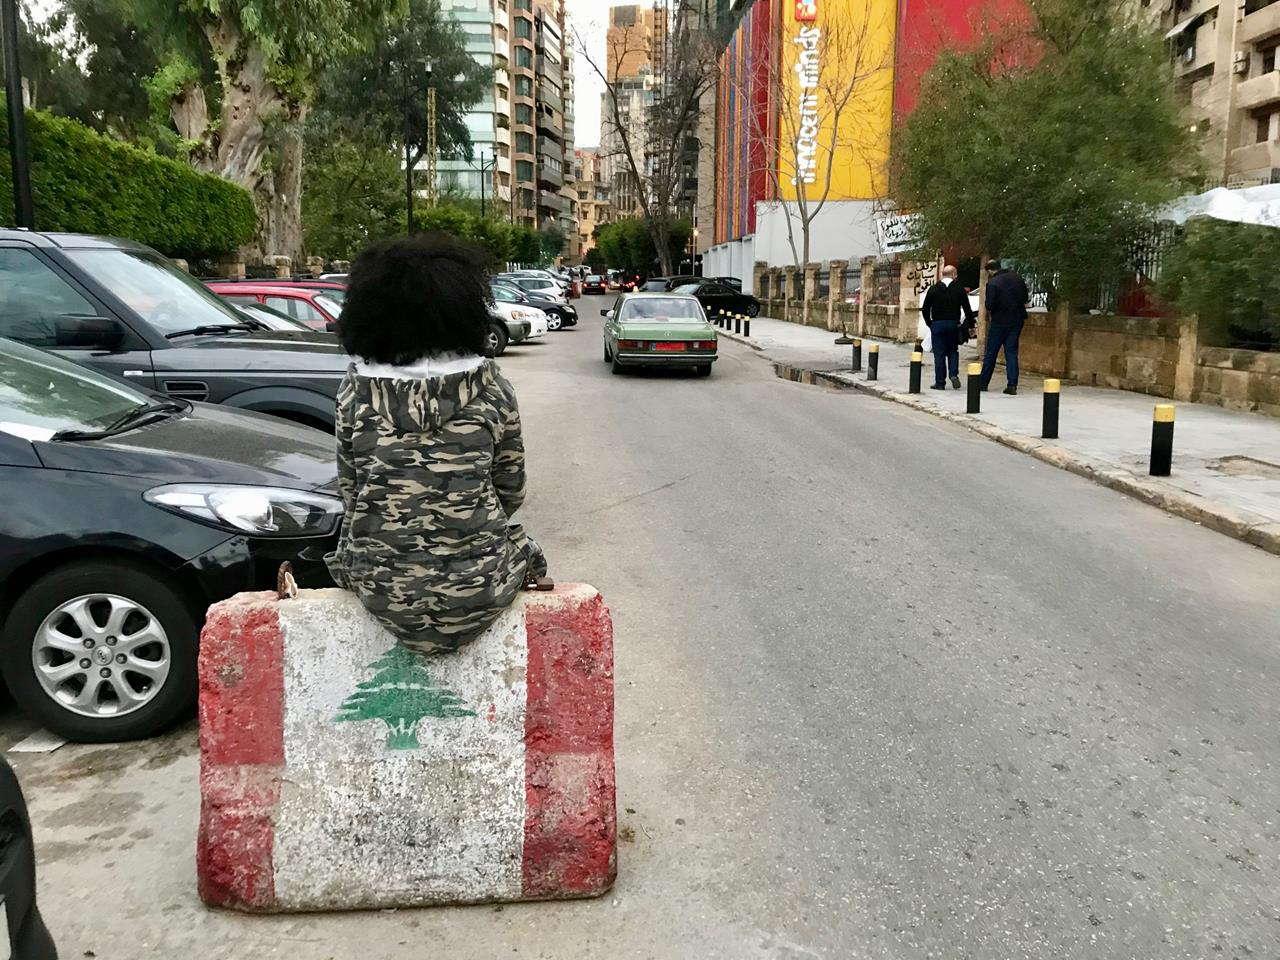 Tsigereda has lived and worked in Lebanon for six years. She perches on a barricade painted with the Lebanese flag in the Hamra neighborhood of Beirut.